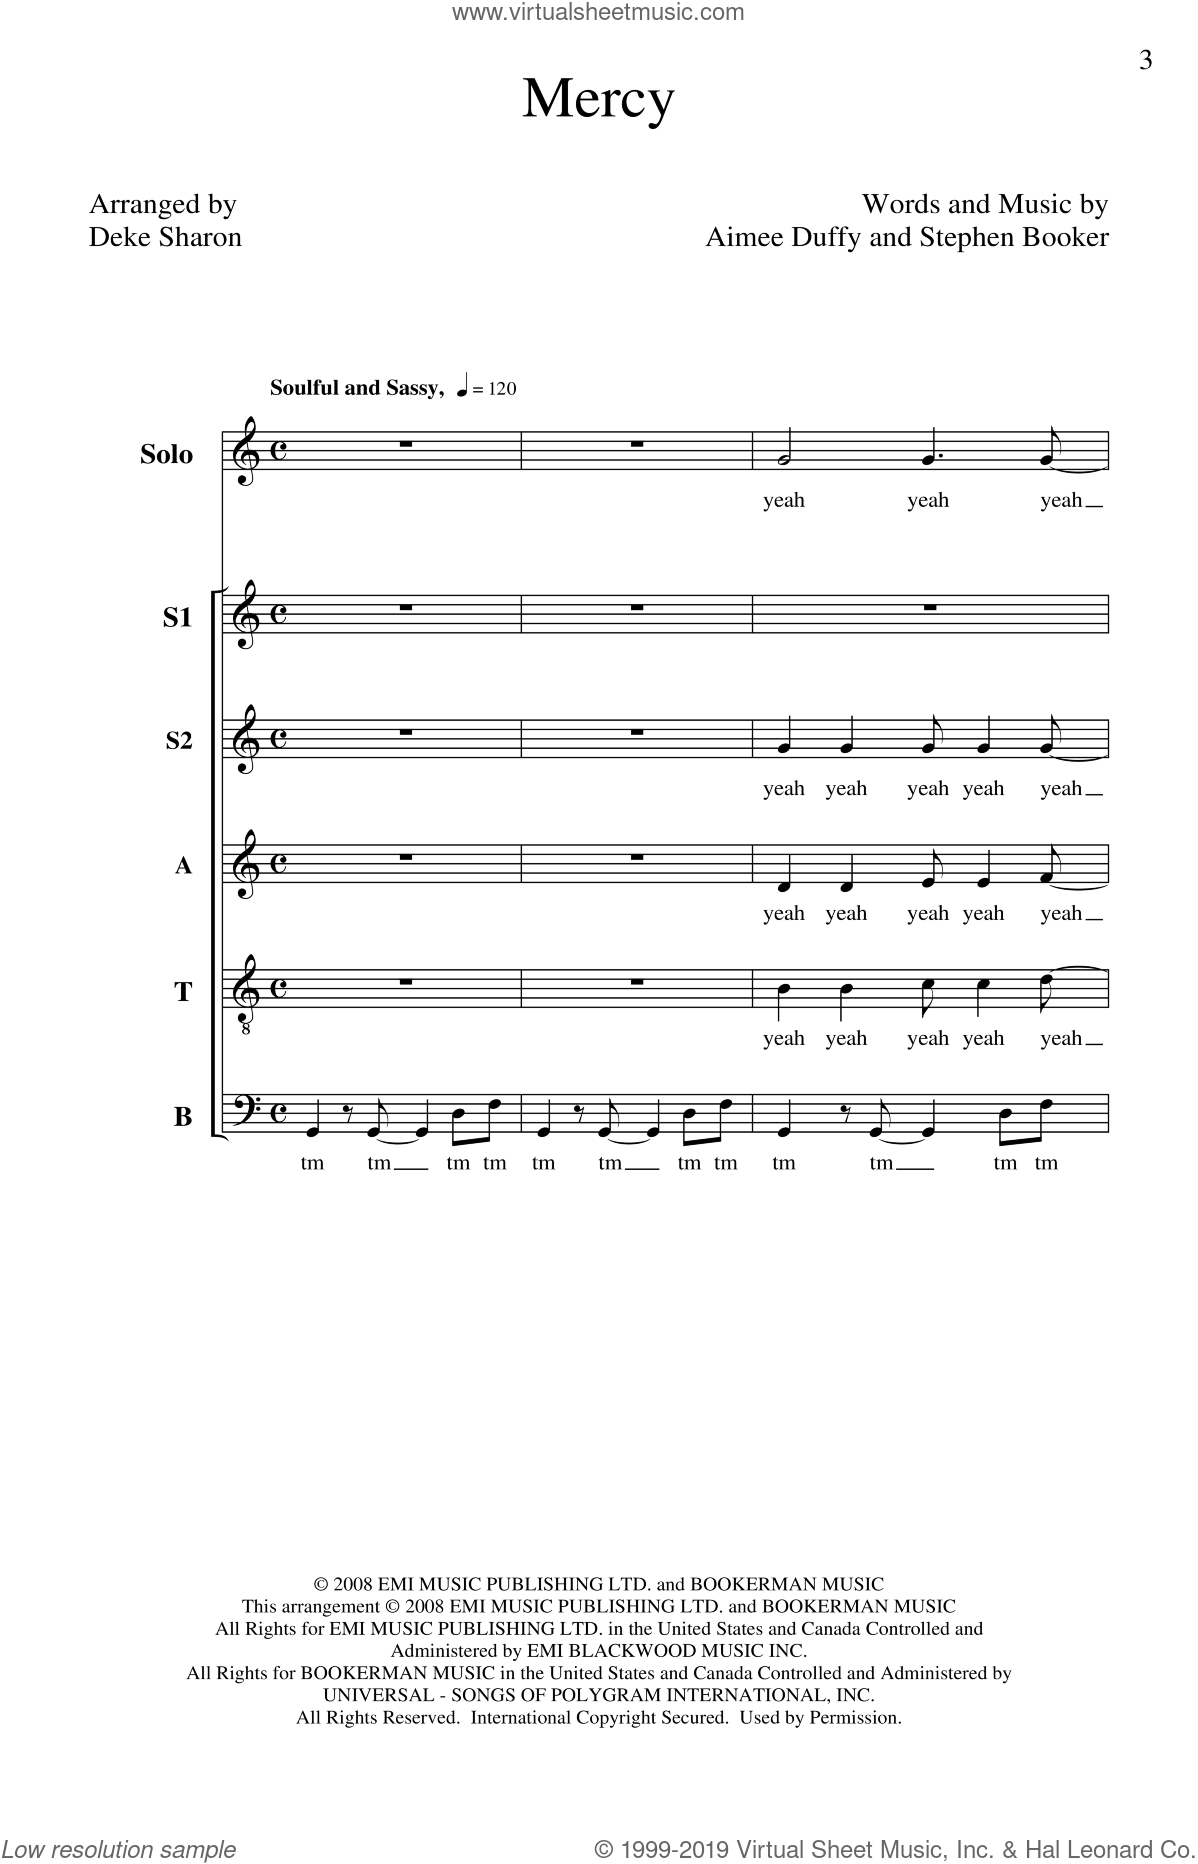 Mercy sheet music for choir (SATB: soprano, alto, tenor, bass) by Deke Sharon, Aimee Duffy, Steve Booker and Duffy, intermediate. Score Image Preview.